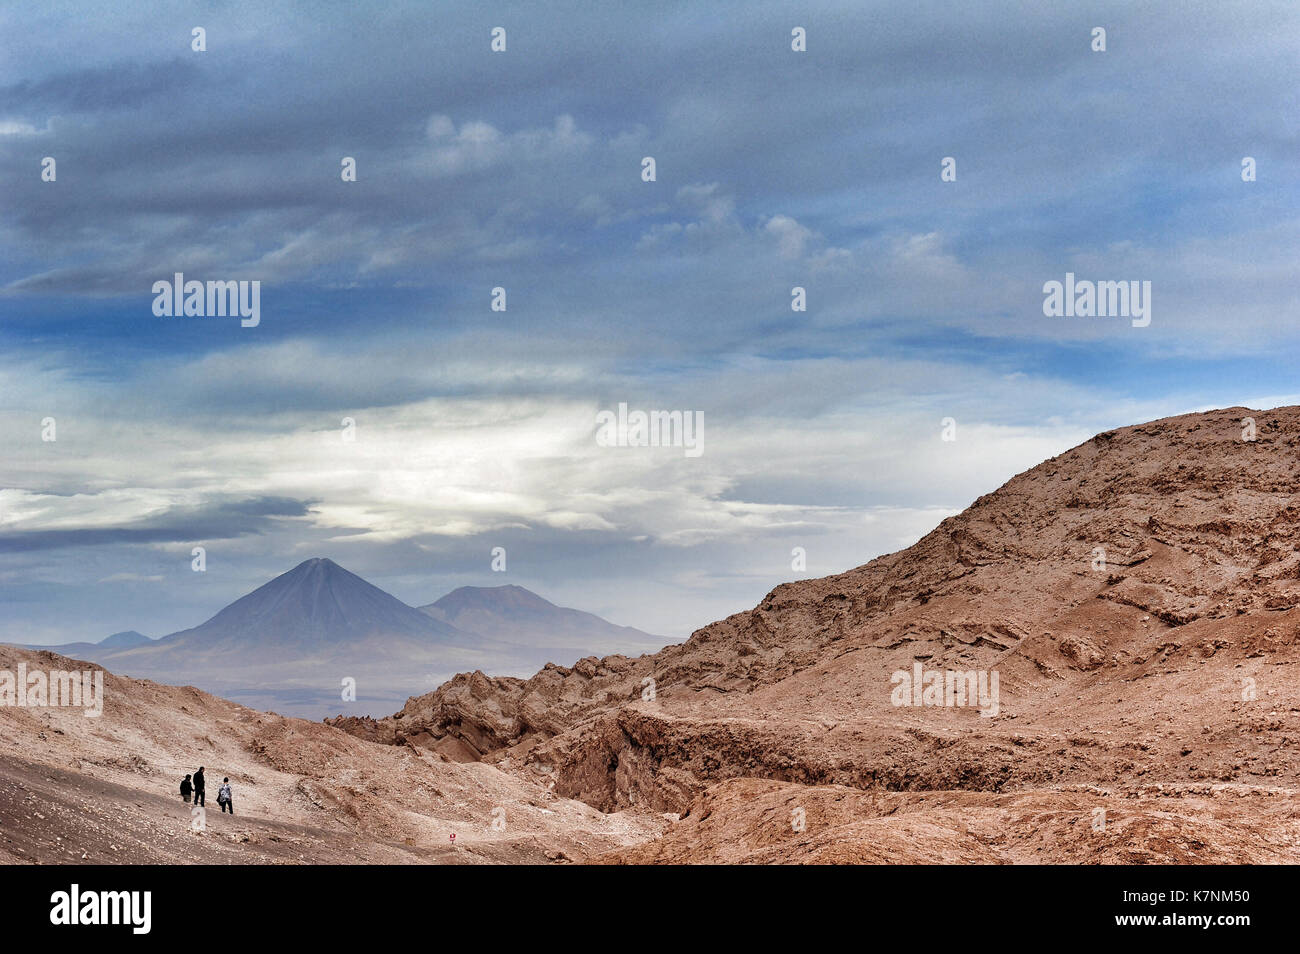 Three people in the Valle de la Luna, Chile. In the background, the peak of the Licancabur volcano. Stock Photo